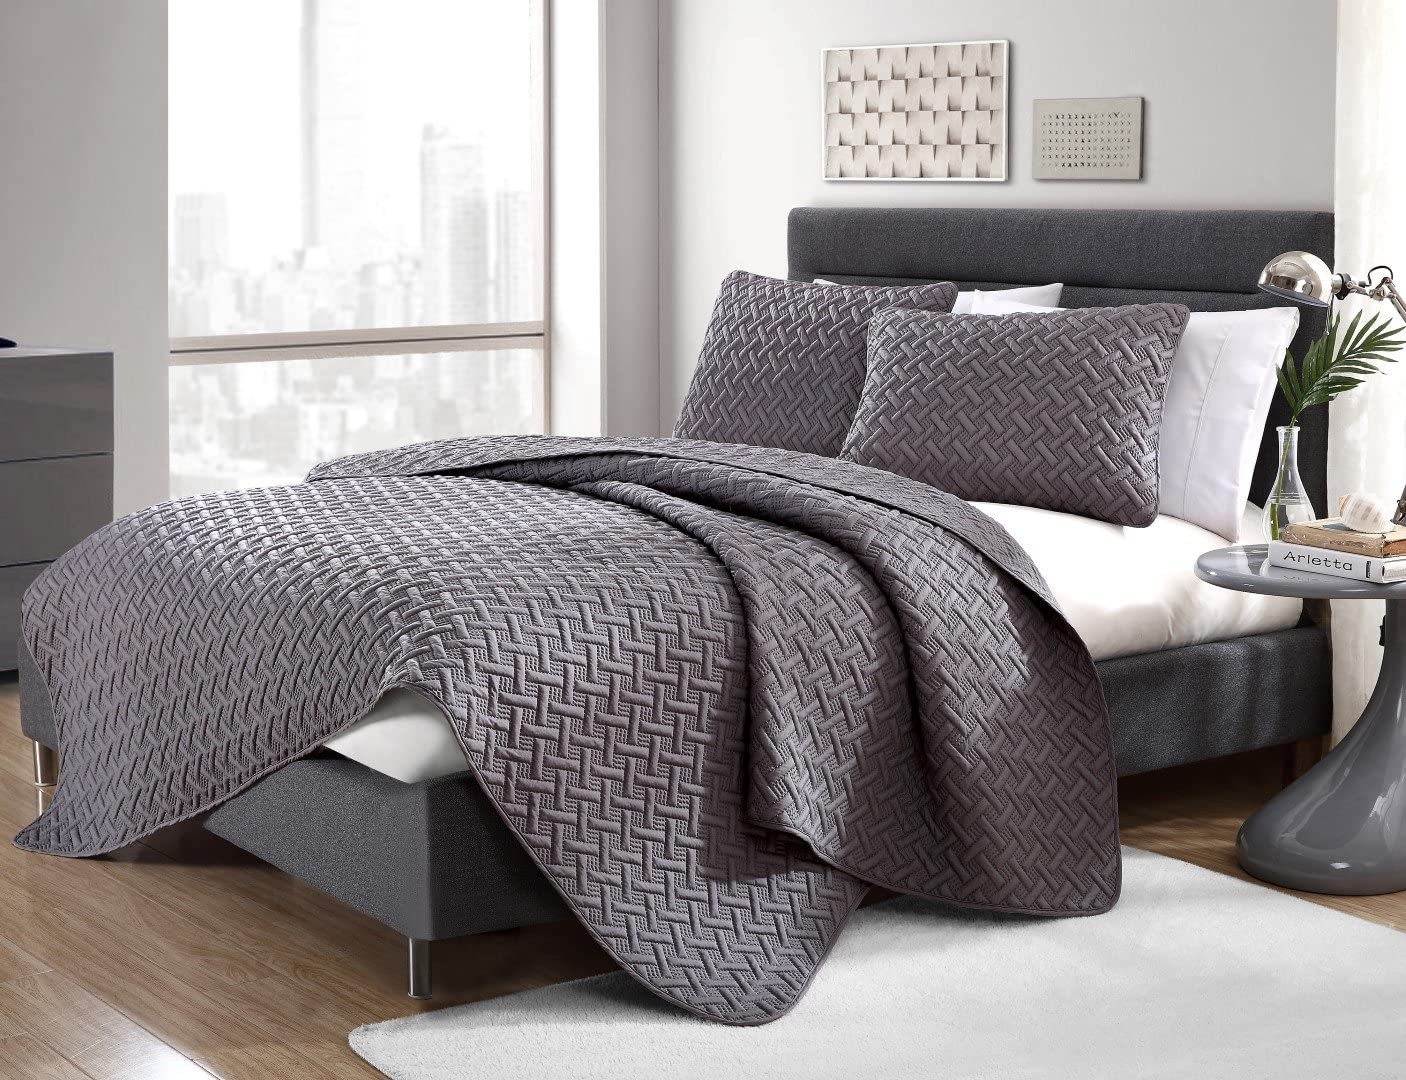 VCNY Home Nina Bedding Collection Luxury Premium Ultra Soft Quilt Coverlet, Comfortable 3 Piece Set, Modern Geometric Design For Home Hotel Decor, King, Grey